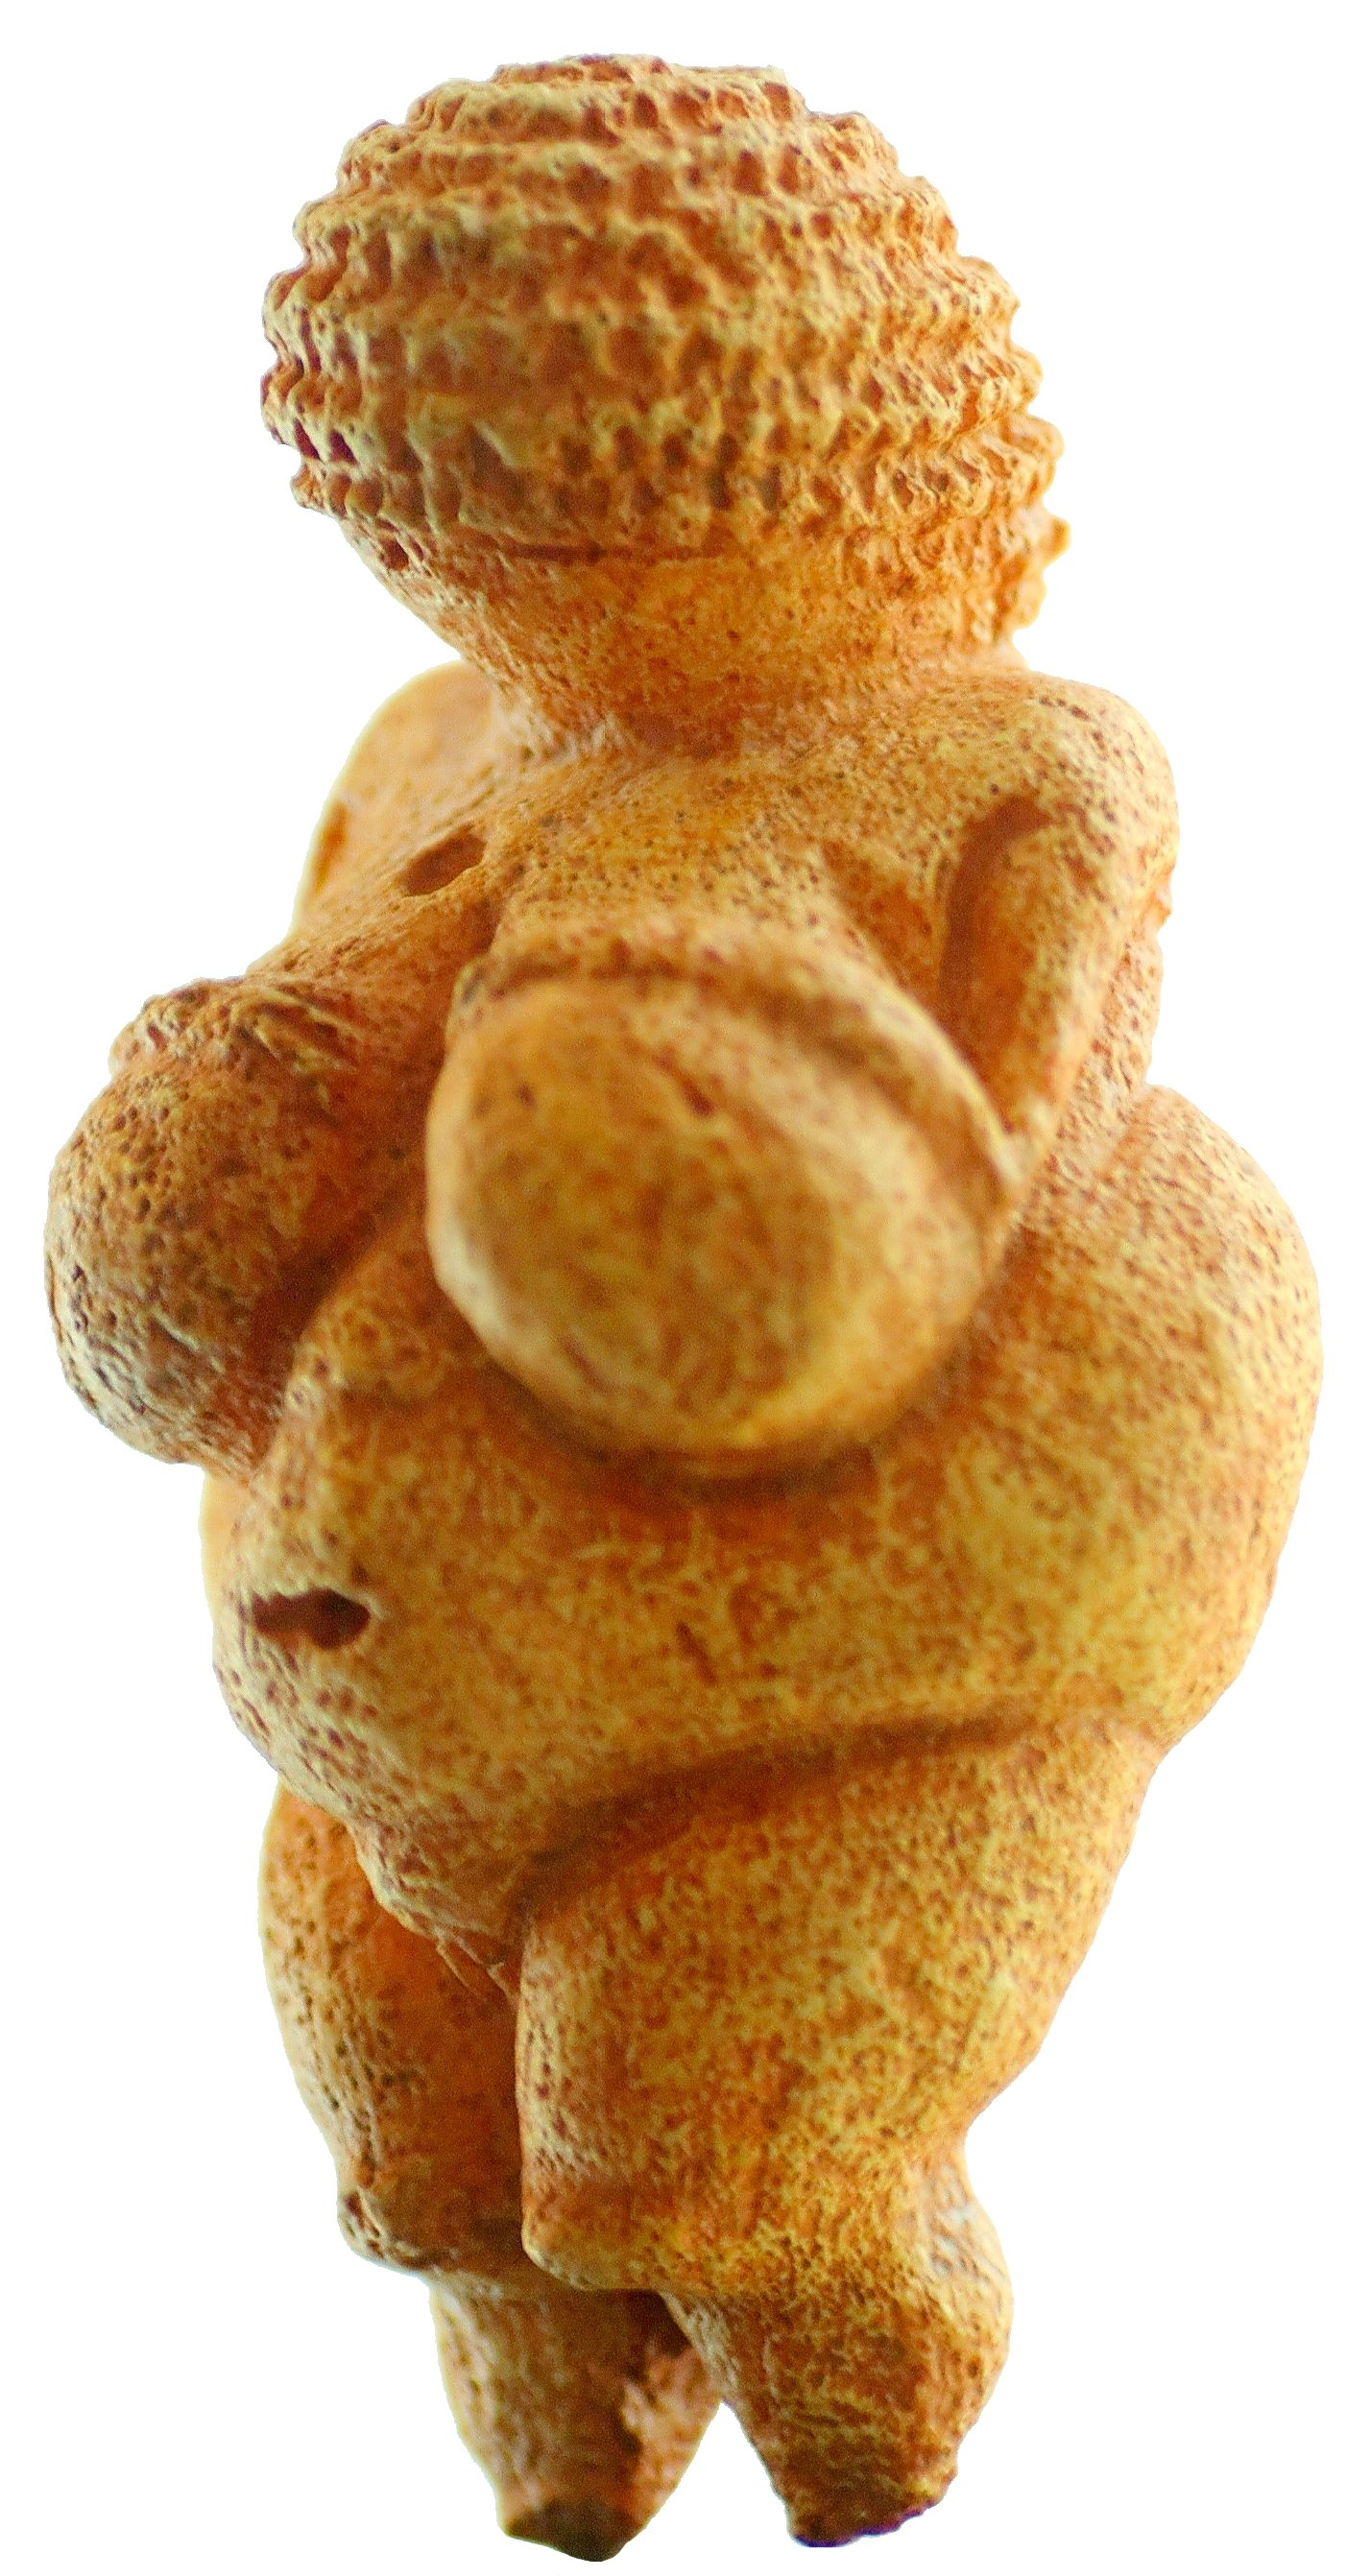 venus of willendorf (wikipedia)